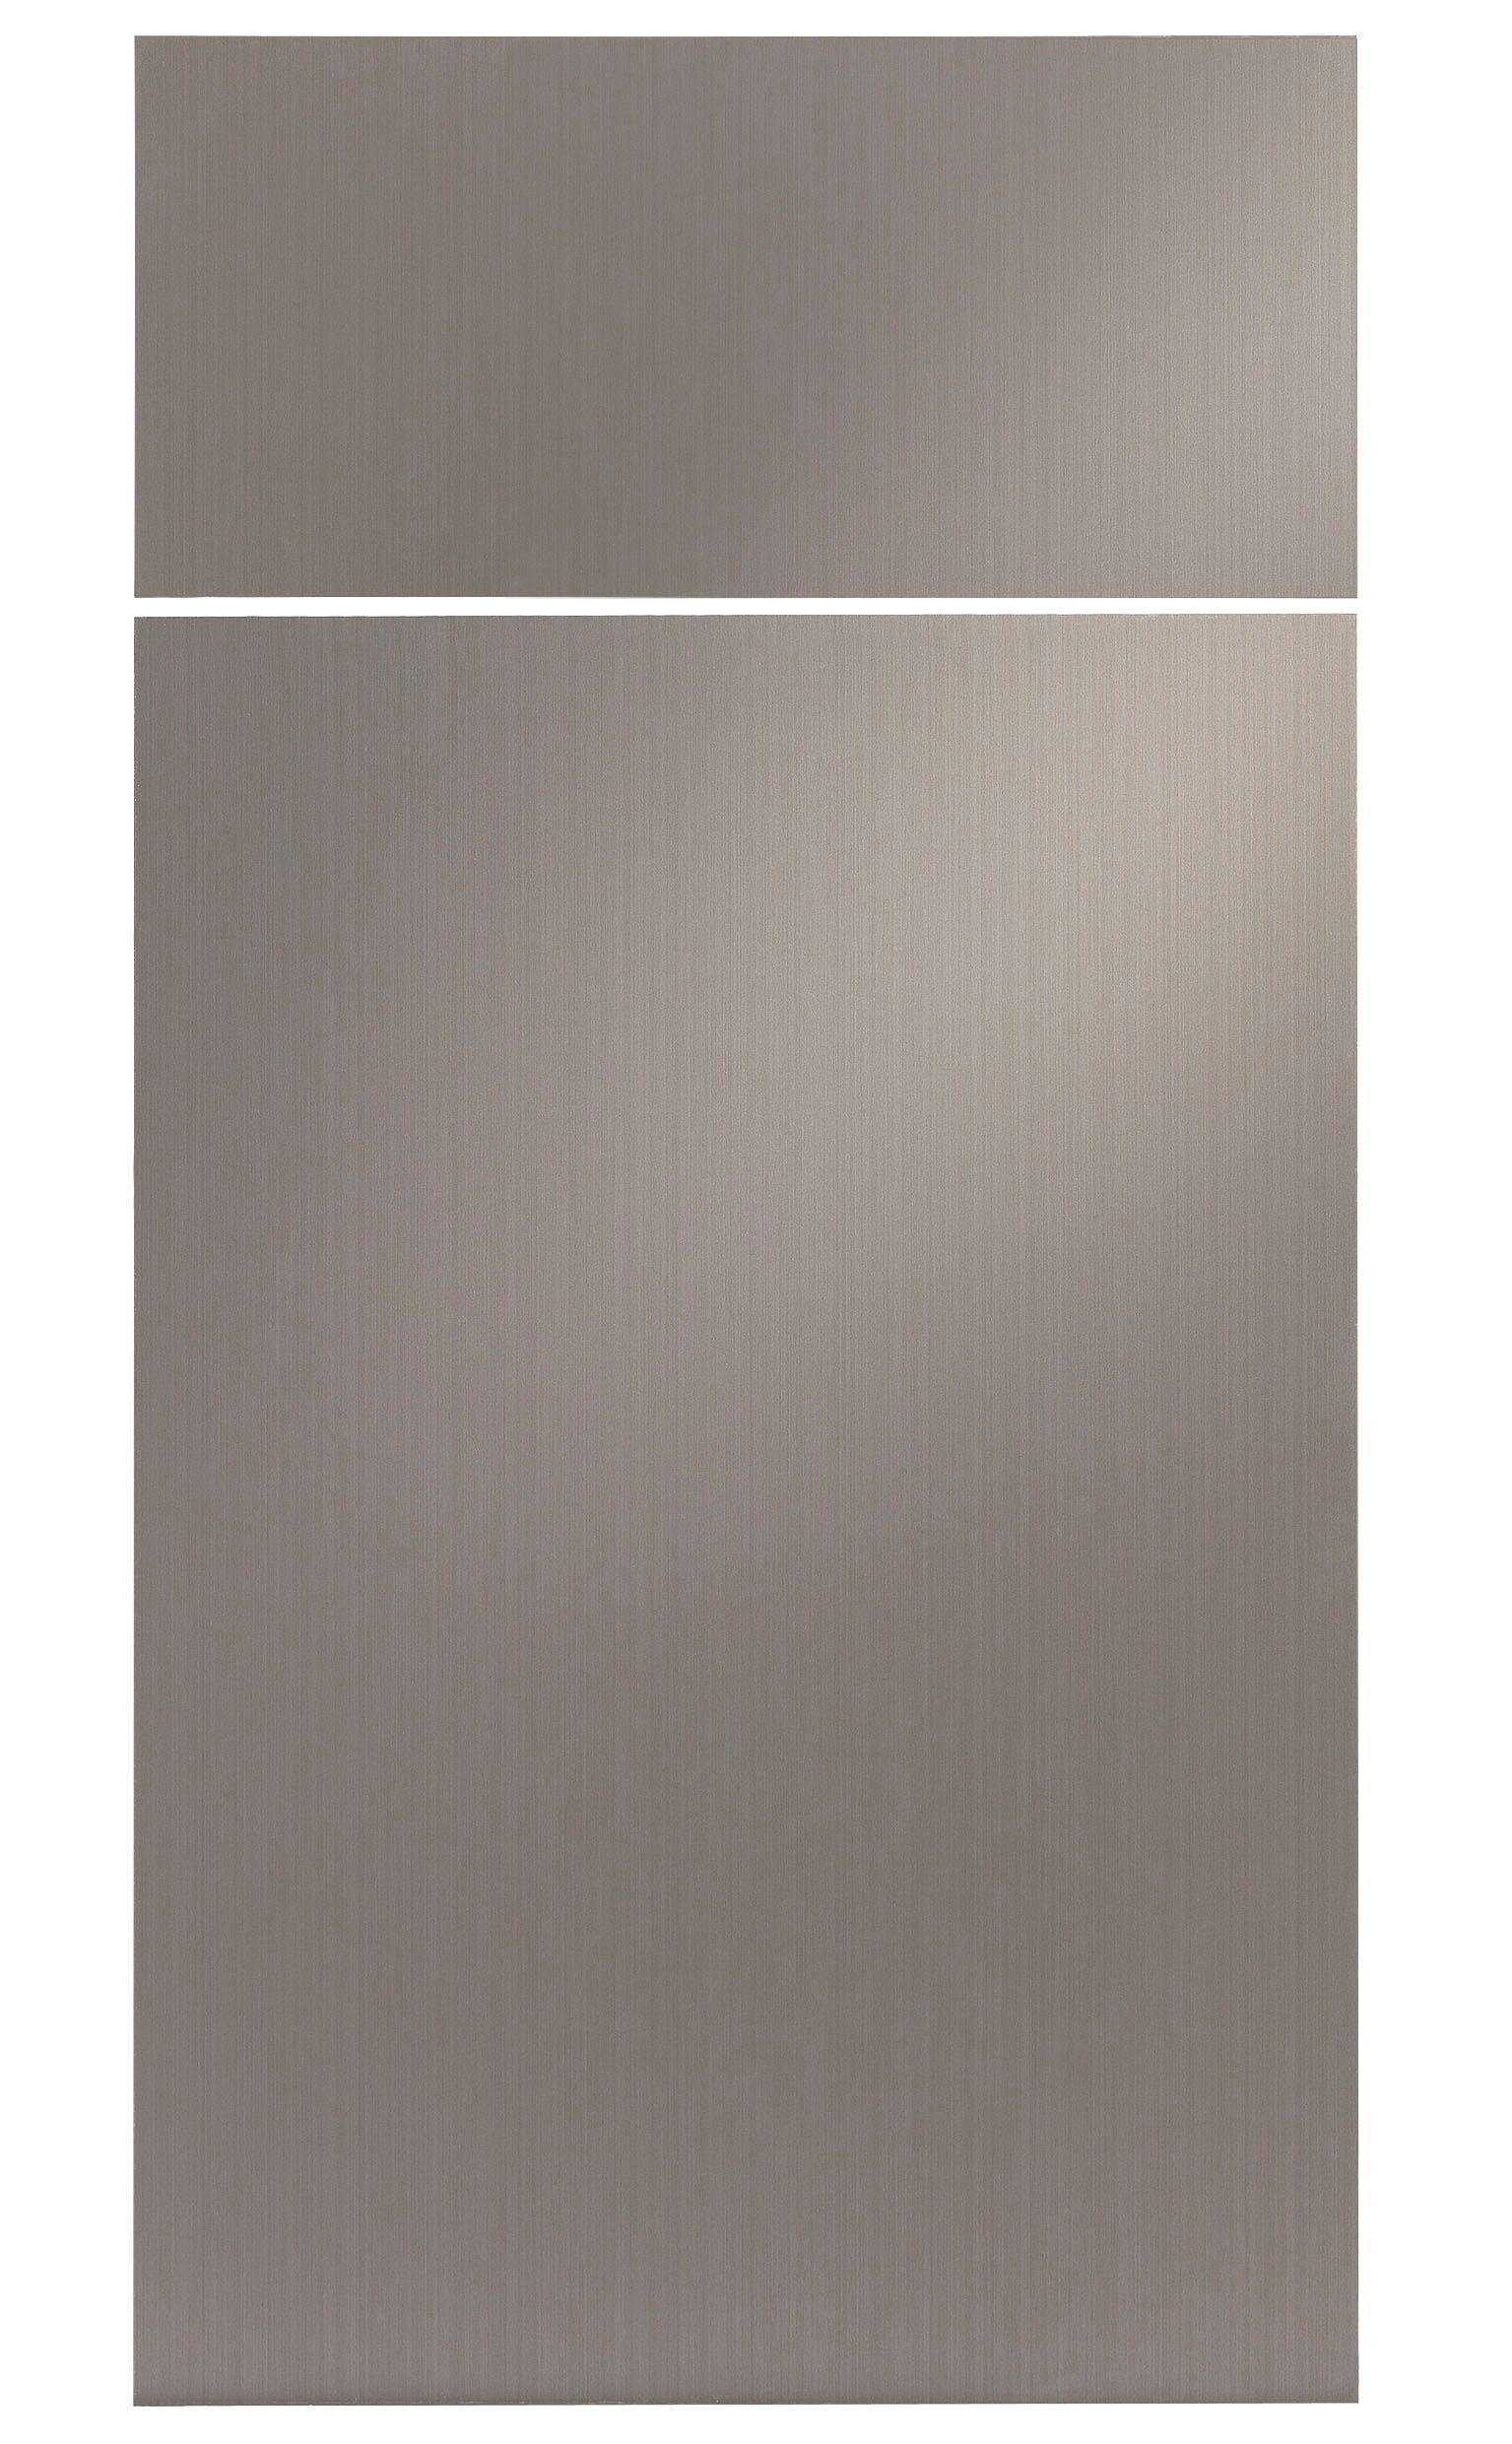 image/catalog/Prestige%20Acrylic%20Doors/01-Wired%20Mercury.jpg